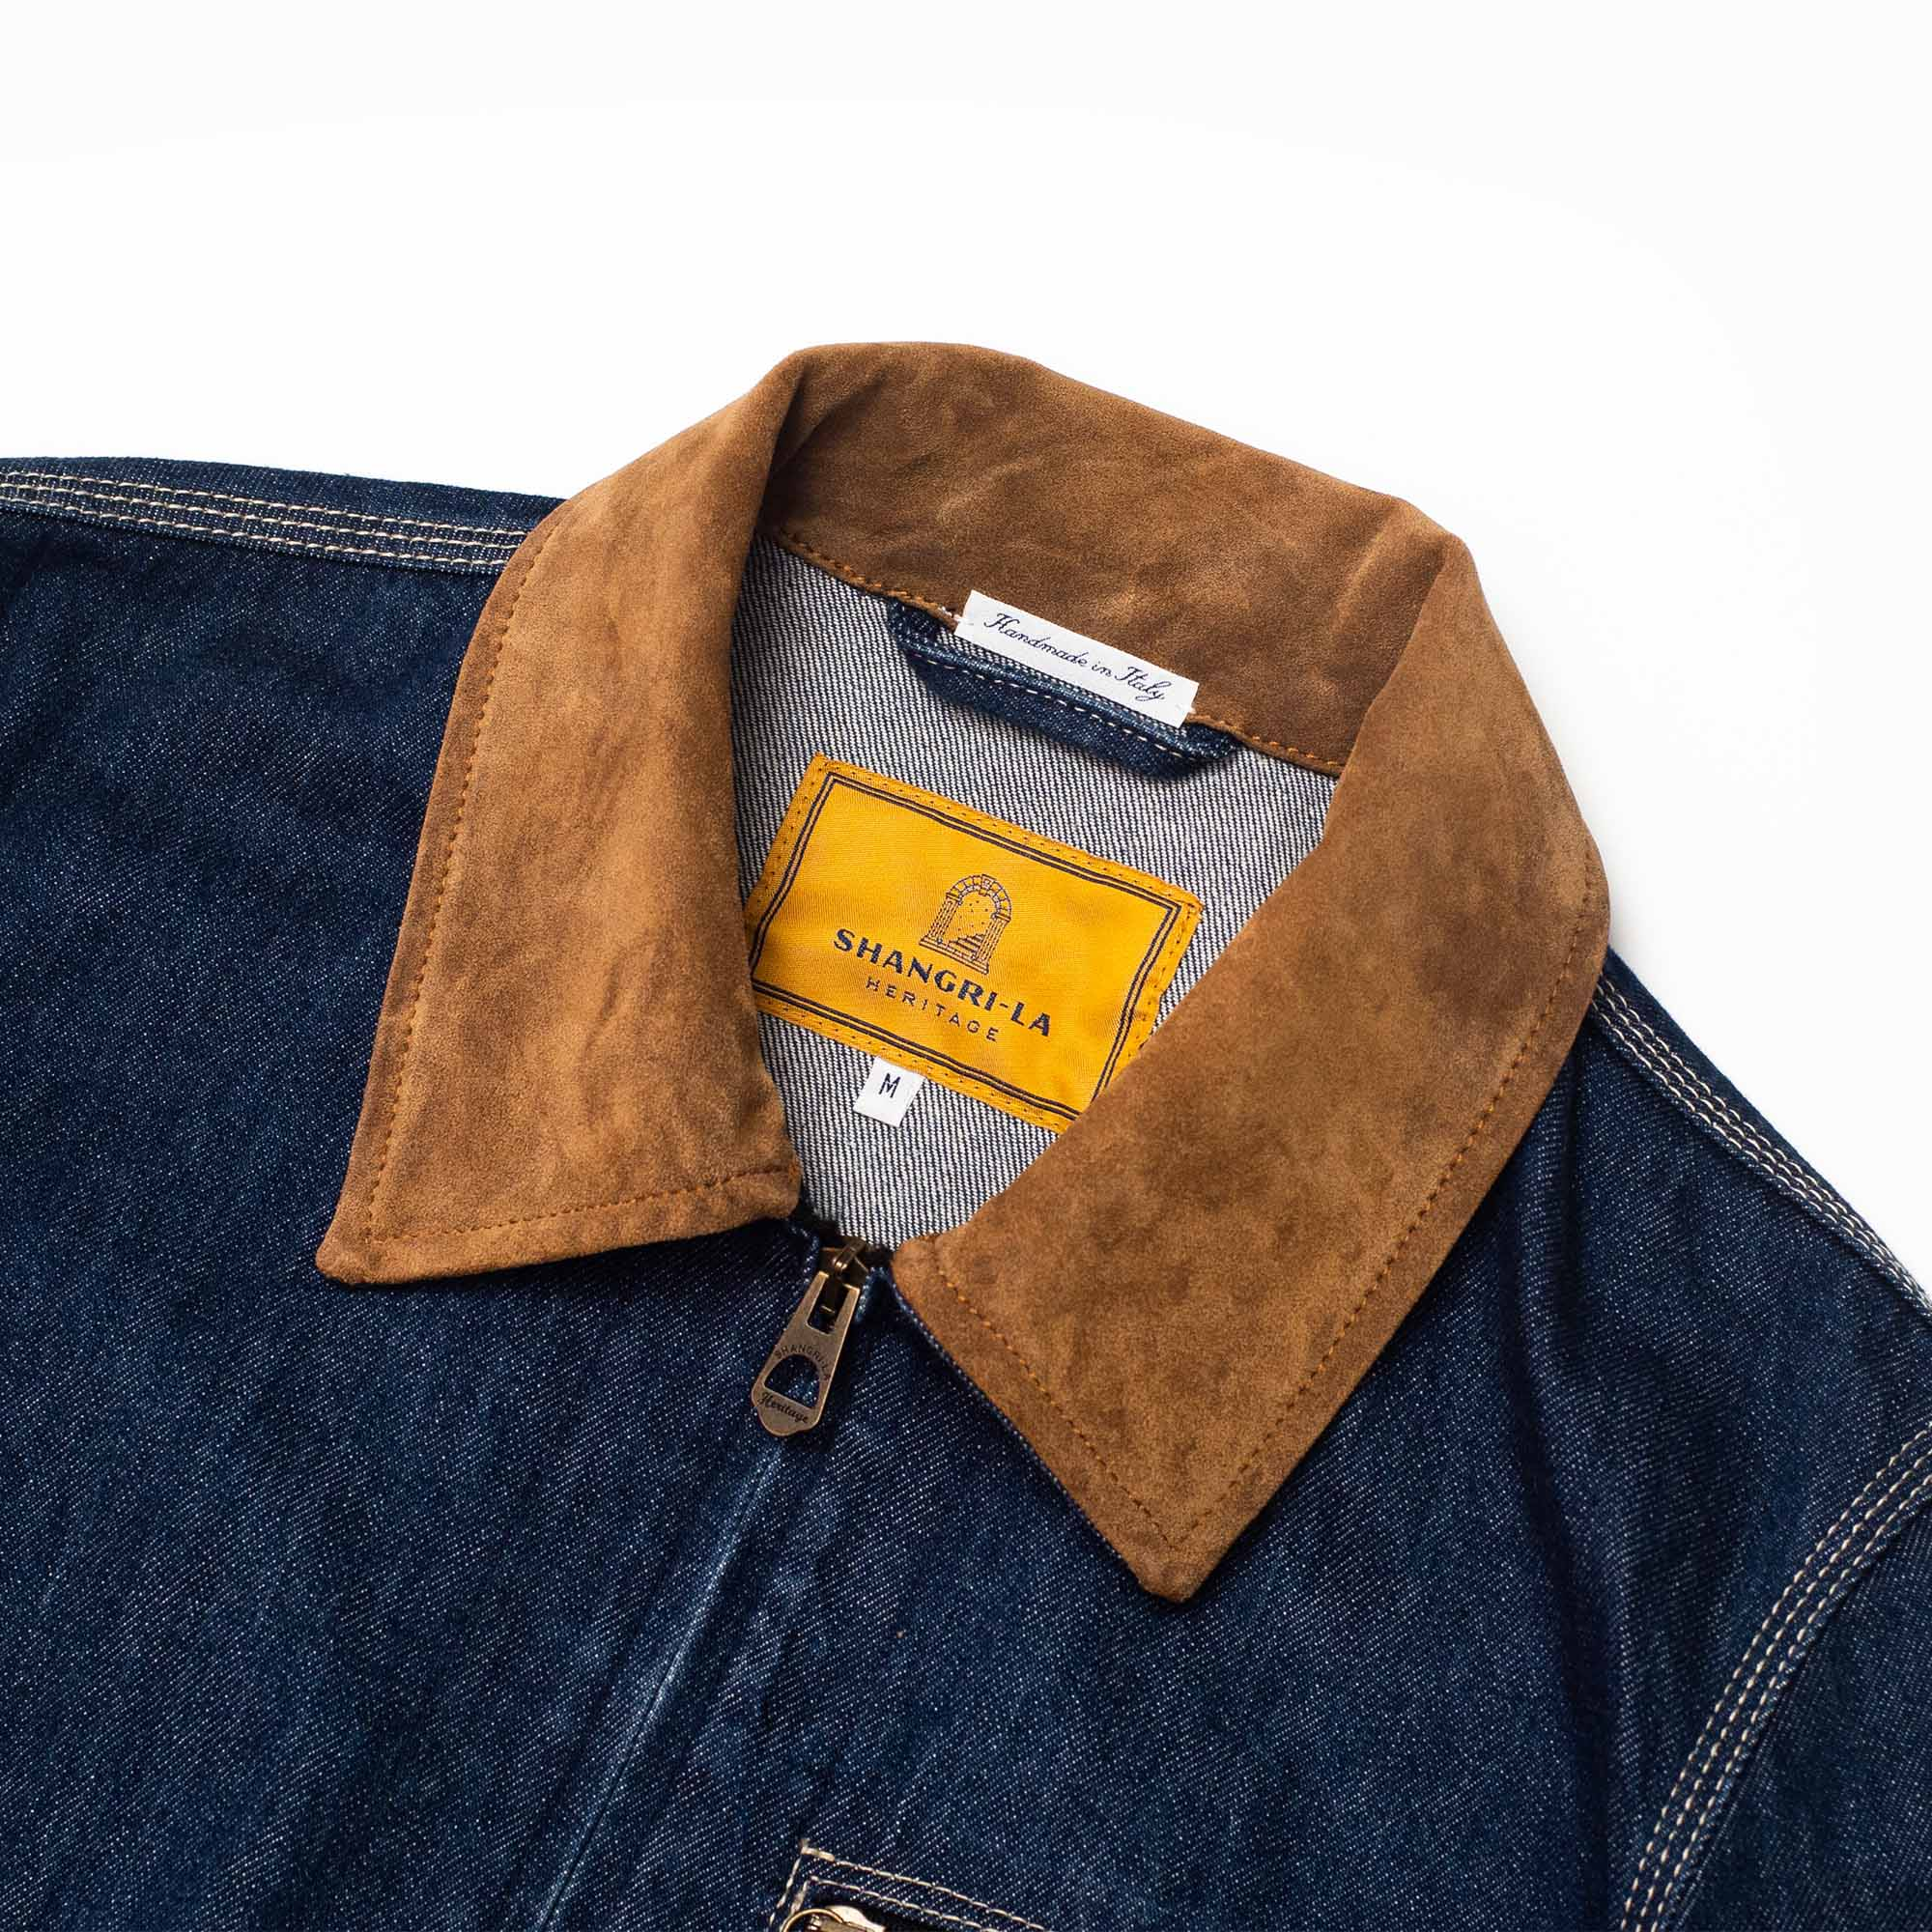 shangri-la-heritage-varenne-ranch-selvedge-candiani-denim-jacket-still-life-collar